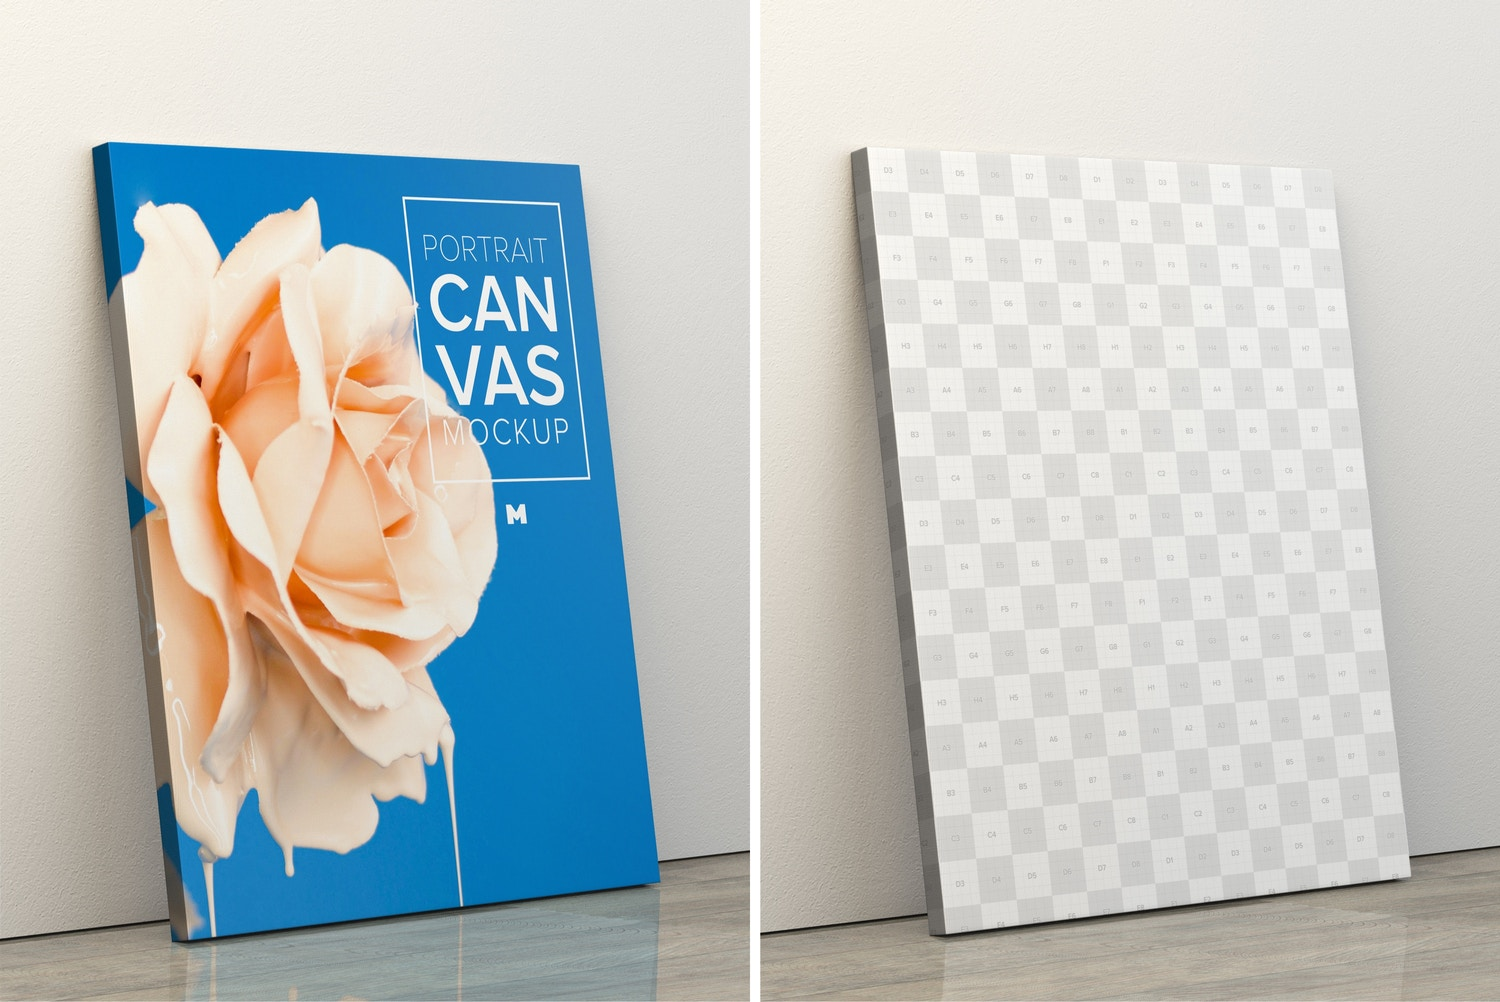 Portrait Canvas Frame Mockup Leaning on Wall by Original Mockups on Original Mockups